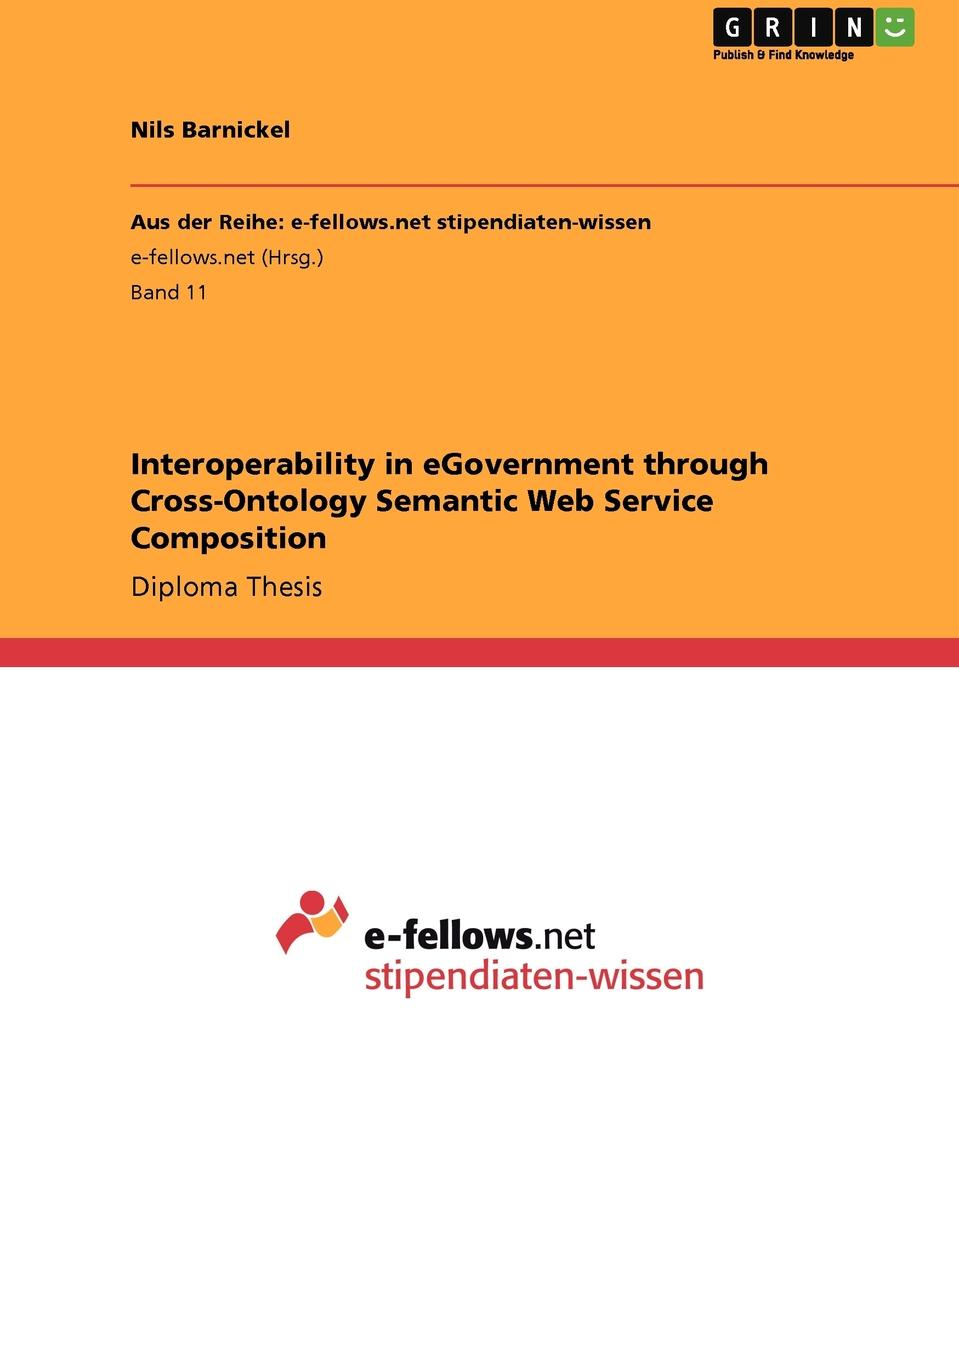 Nils Barnickel Interoperability in eGovernment through Cross-Ontology Semantic Web Service Composition